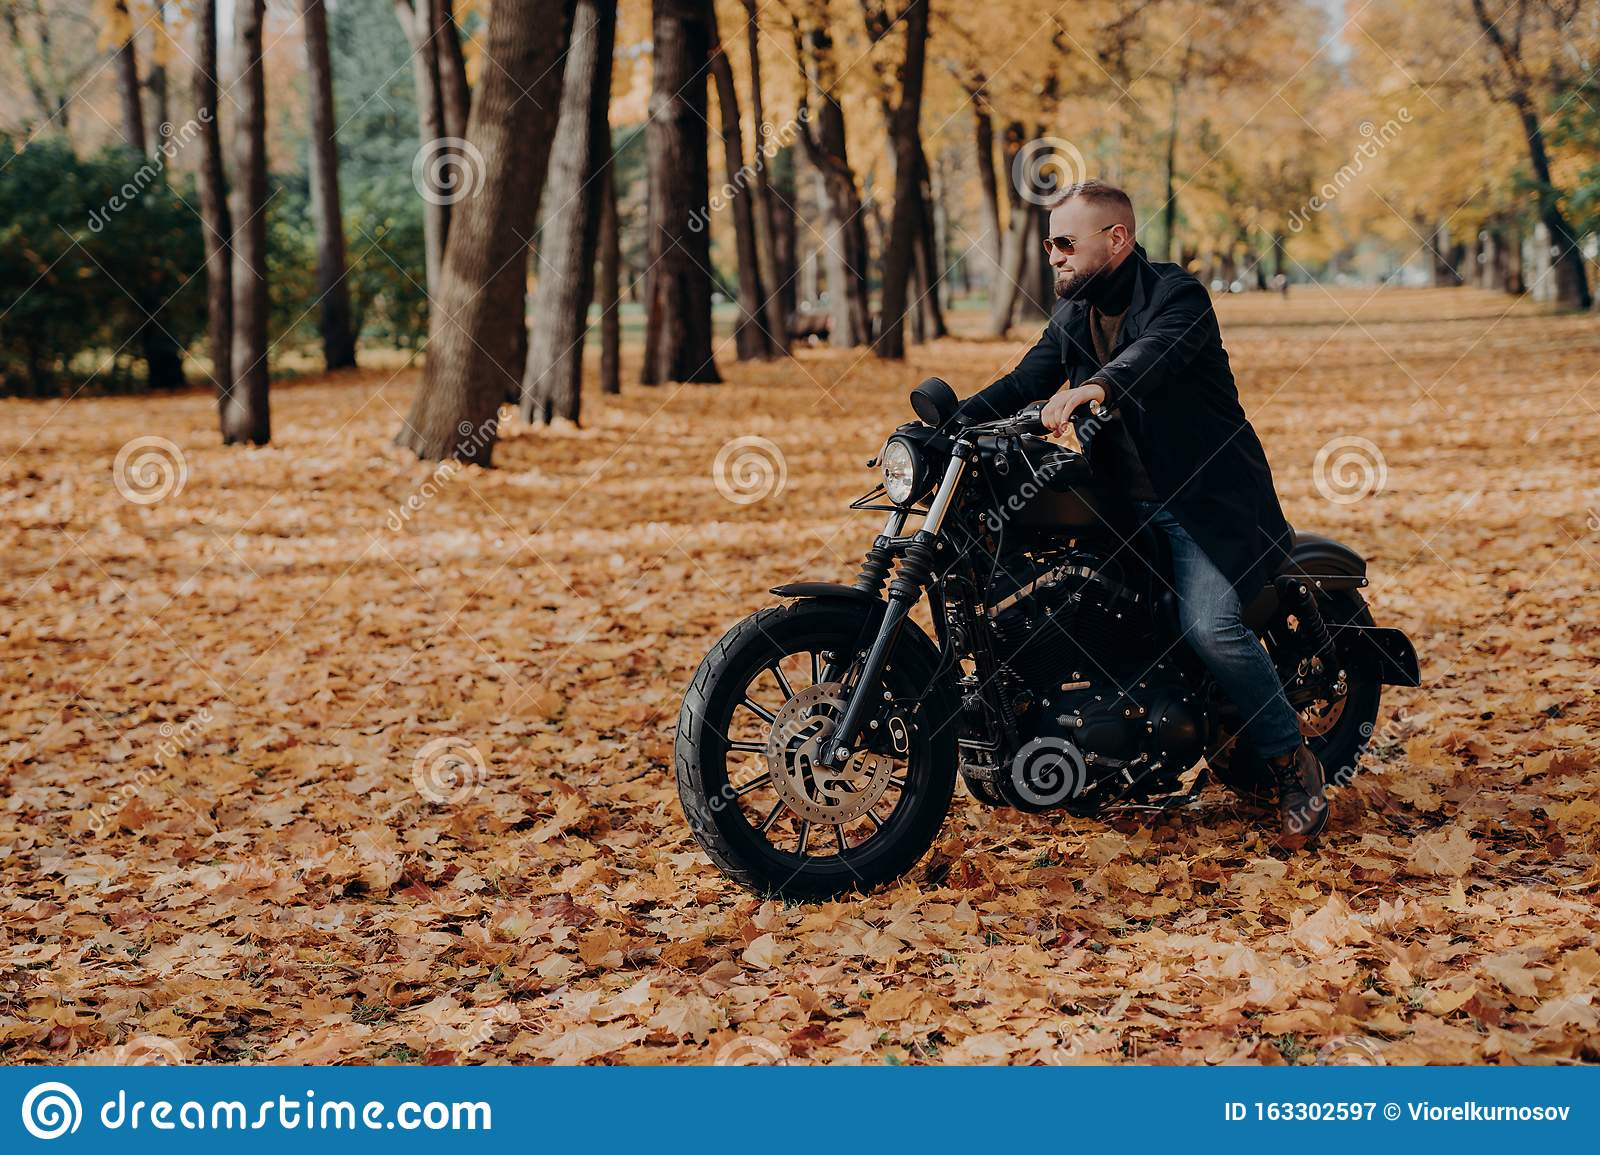 758 Bike Poses Photos Free Royalty Free Stock Photos From Dreamstime